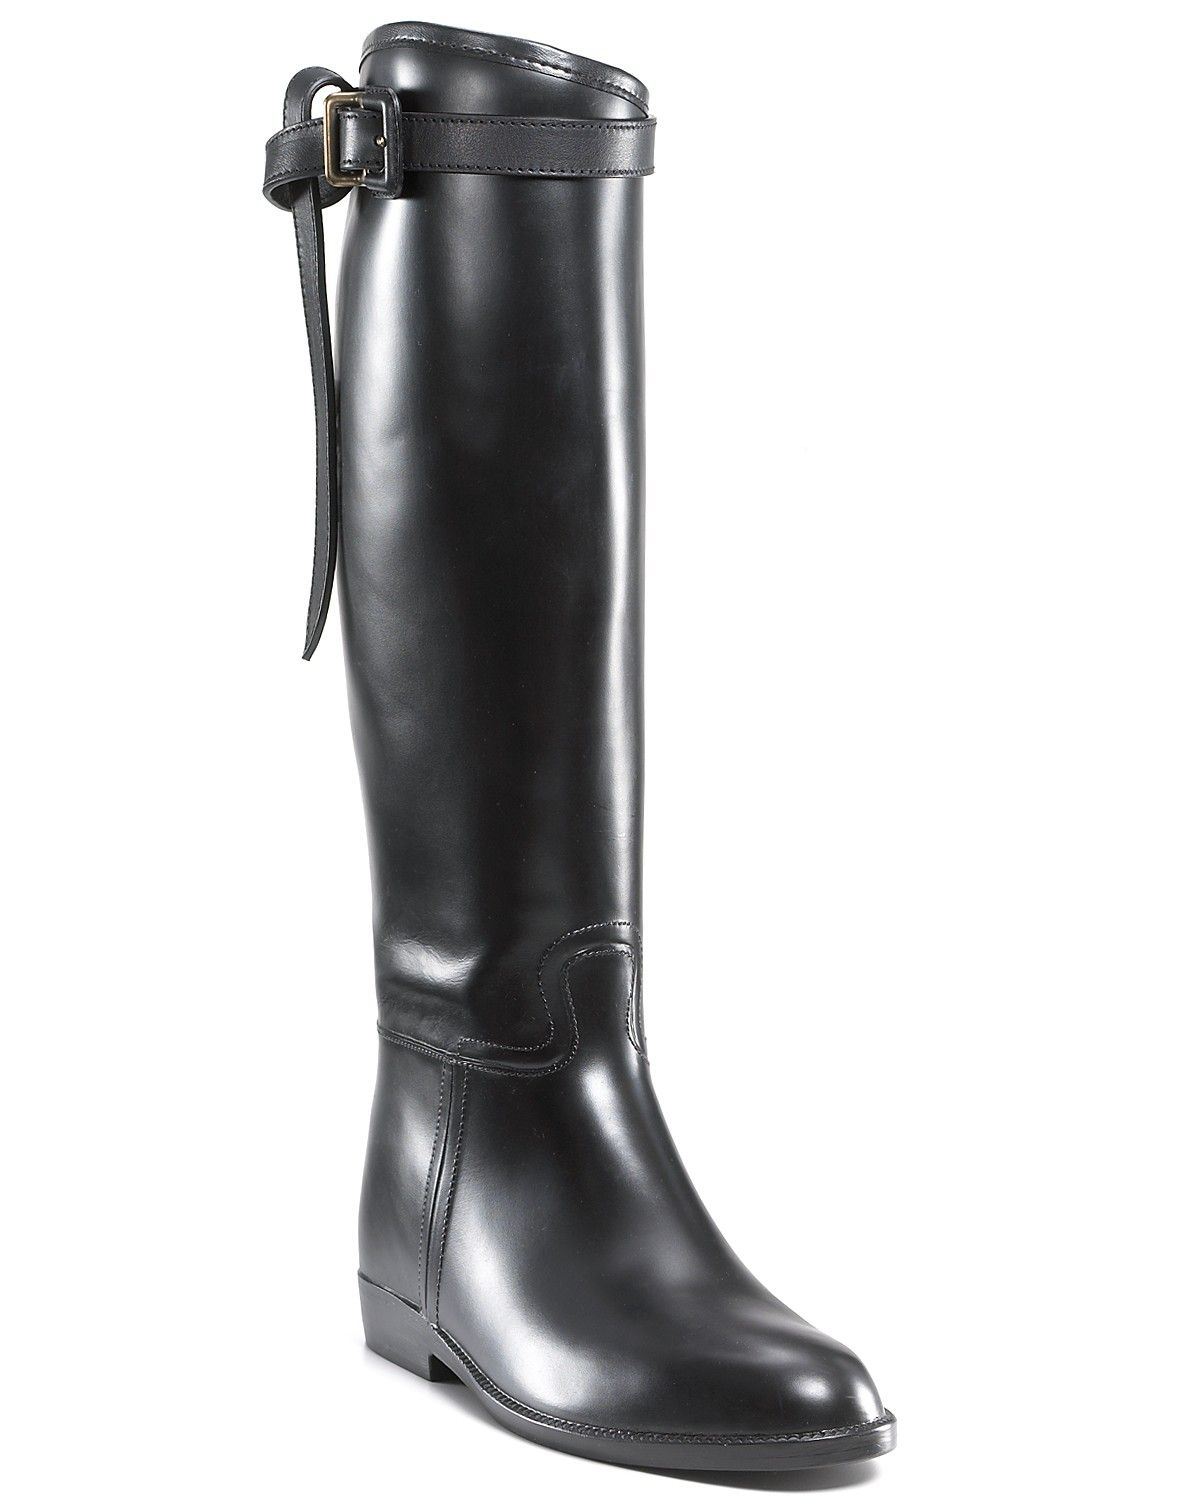 Burberry Riding Rain Boots